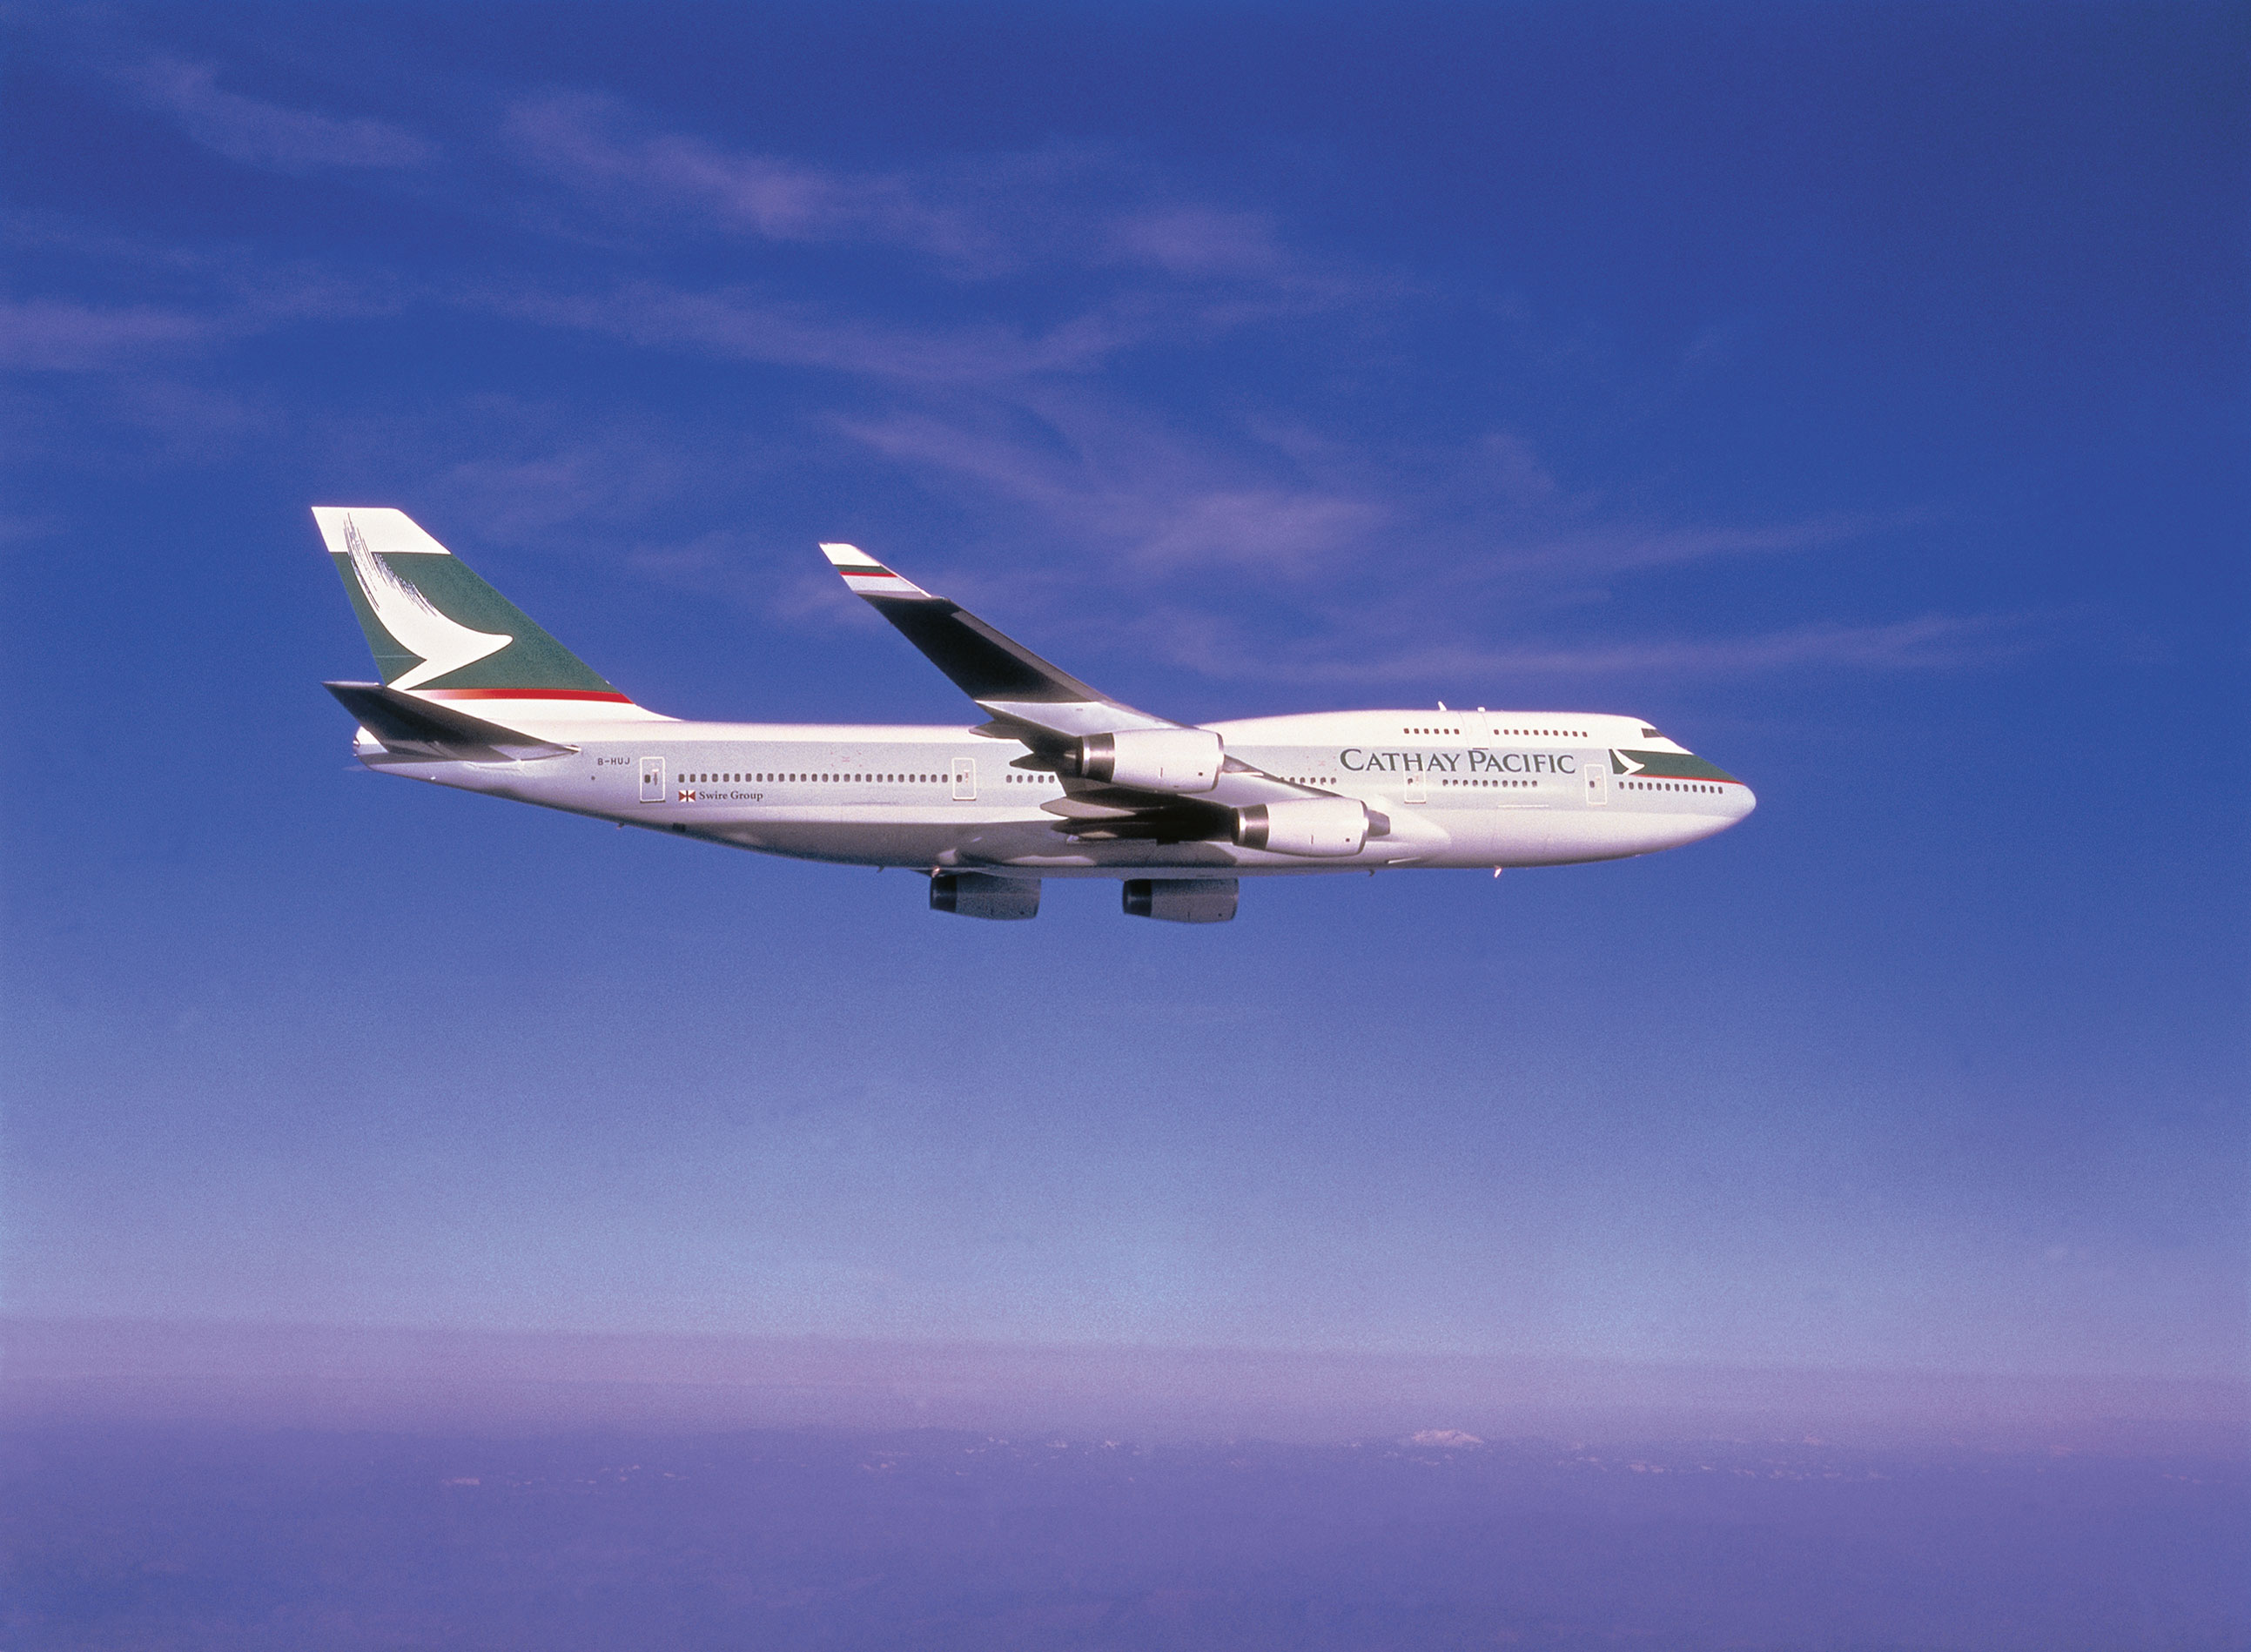 Lynch-Bages on board Cathay Pacific